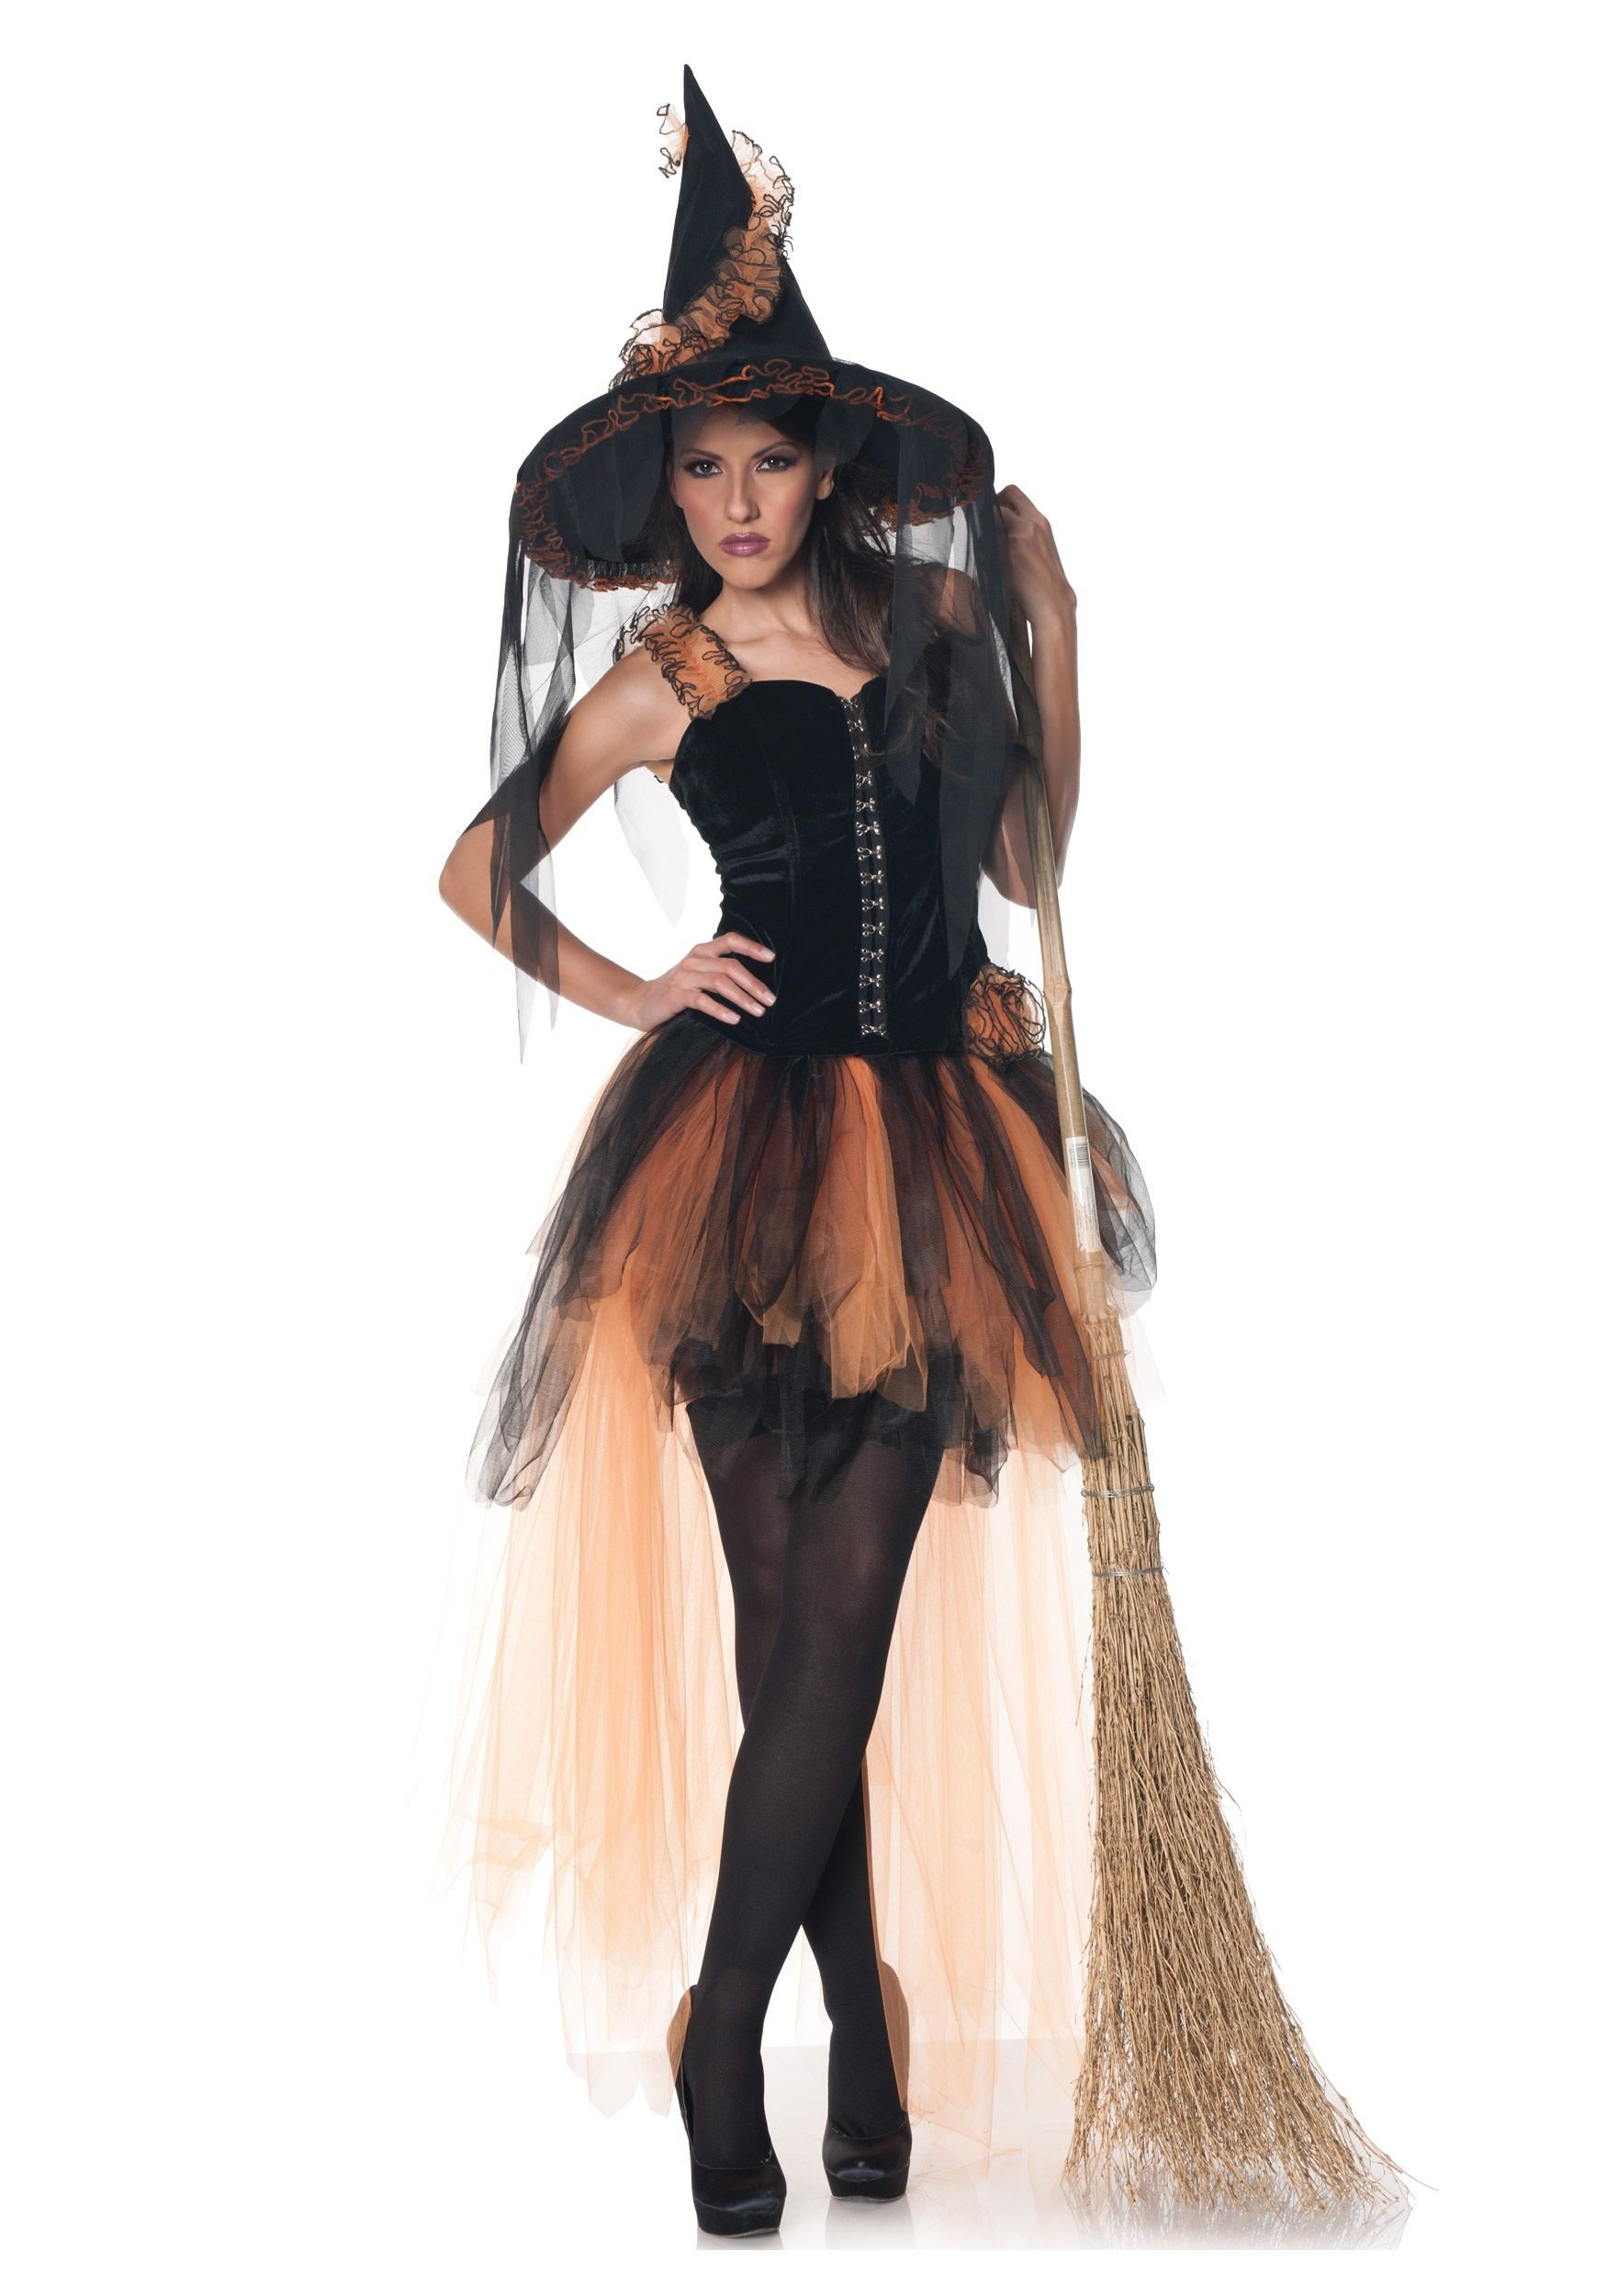 Hallow's Eve Women's Orange & Black Witch Costume | Witch costumes ...